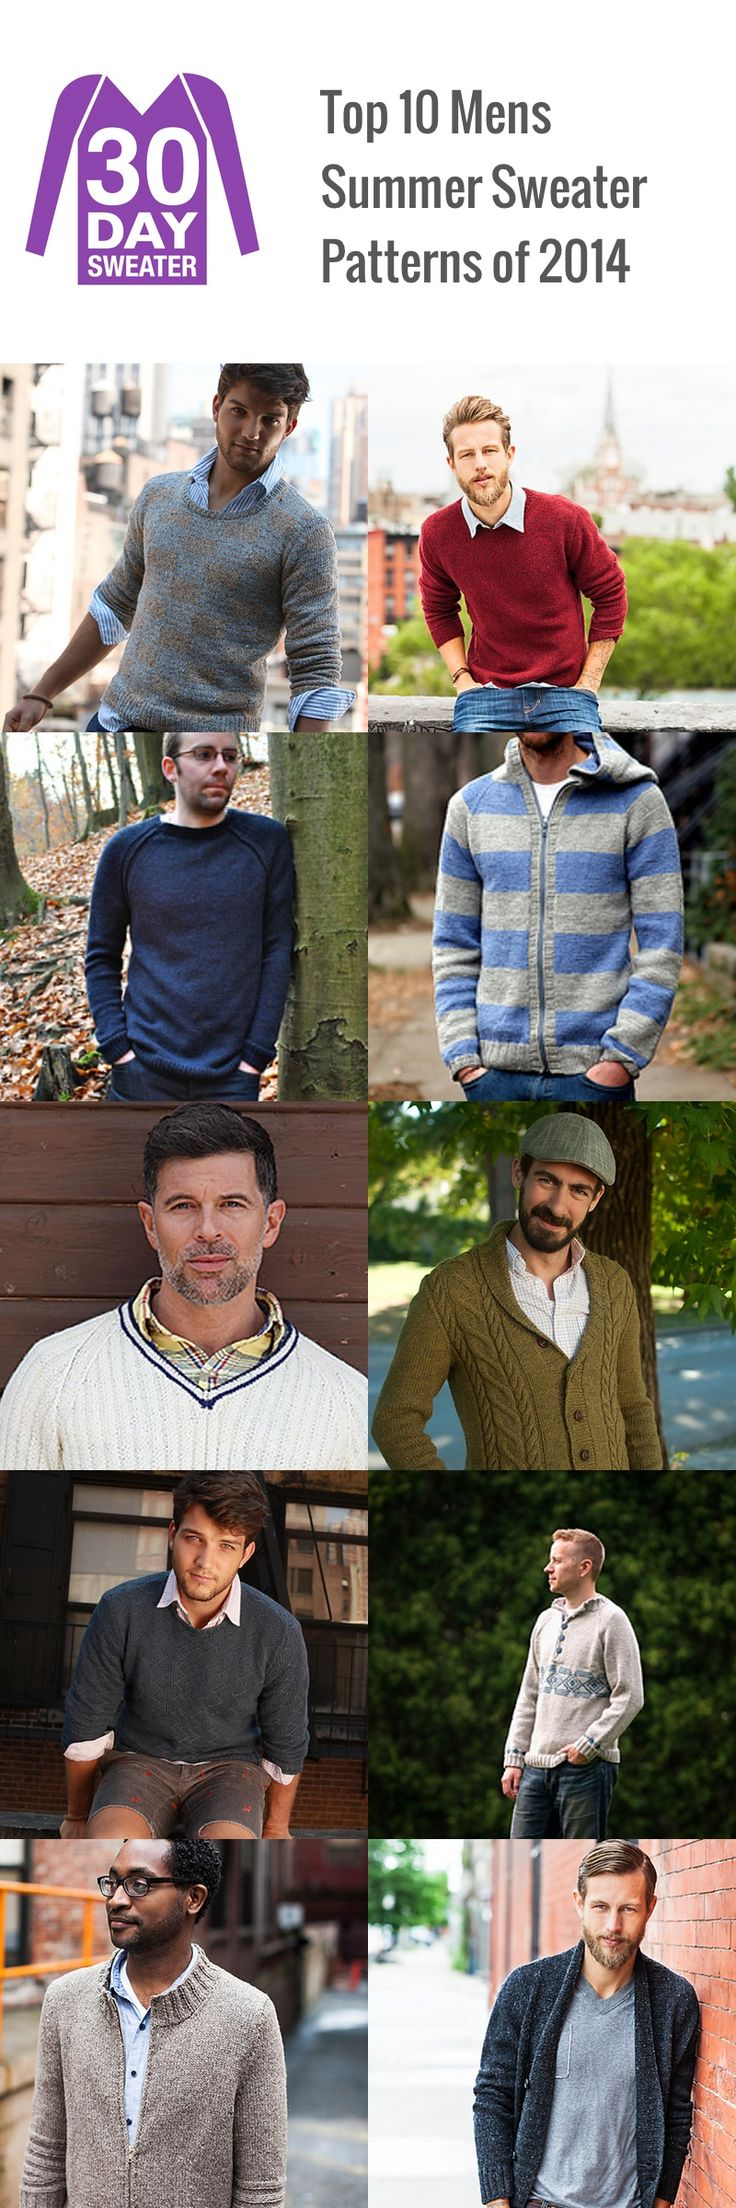 Top 10 Men's Summer Sweater Patterns of 2014 :: 30 Day Sweater--The first 3 patterns are free.